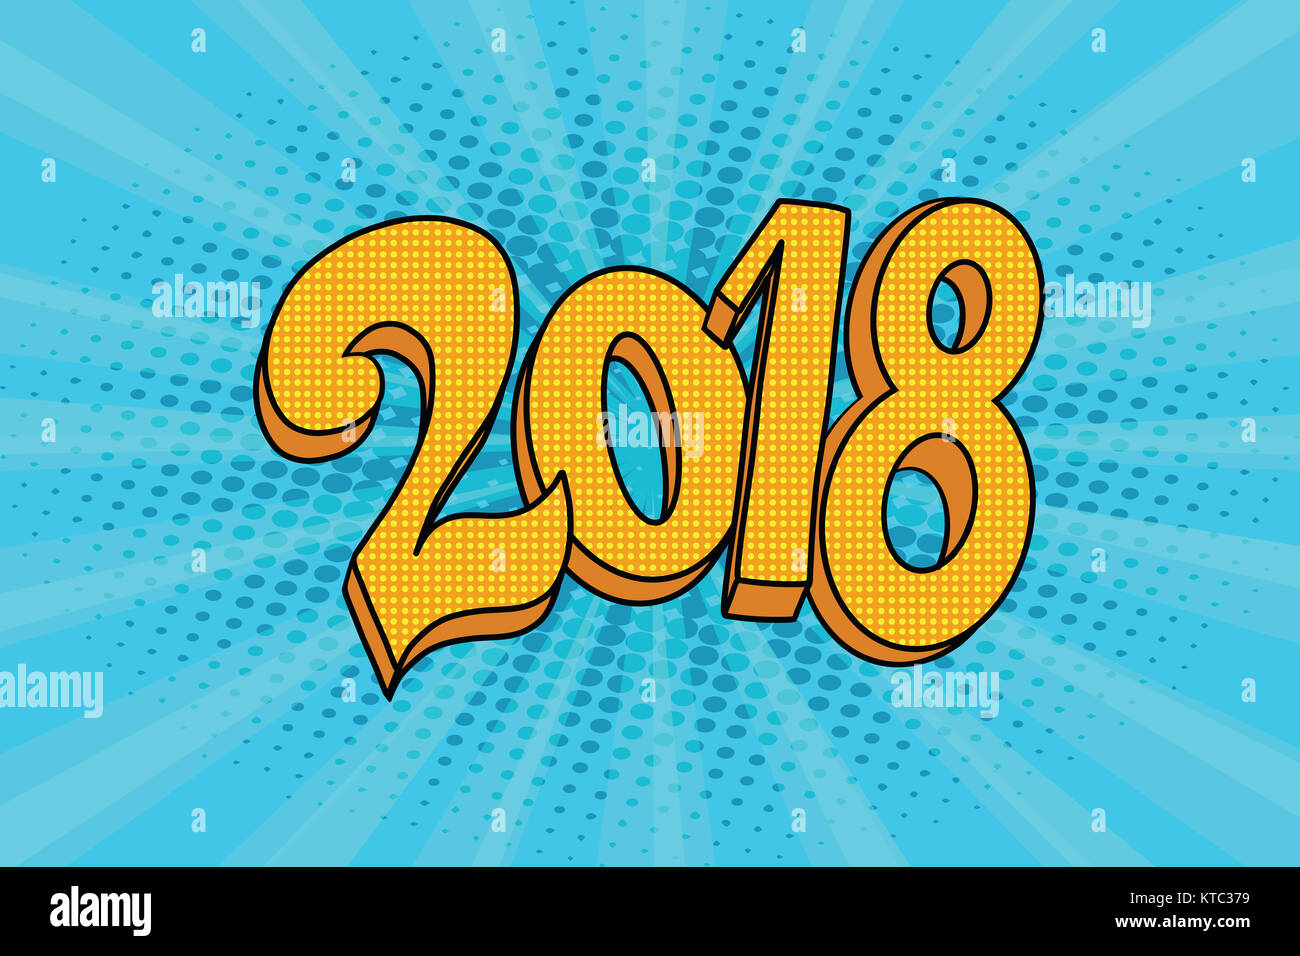 2018 two thousand eighteen year - Stock Image